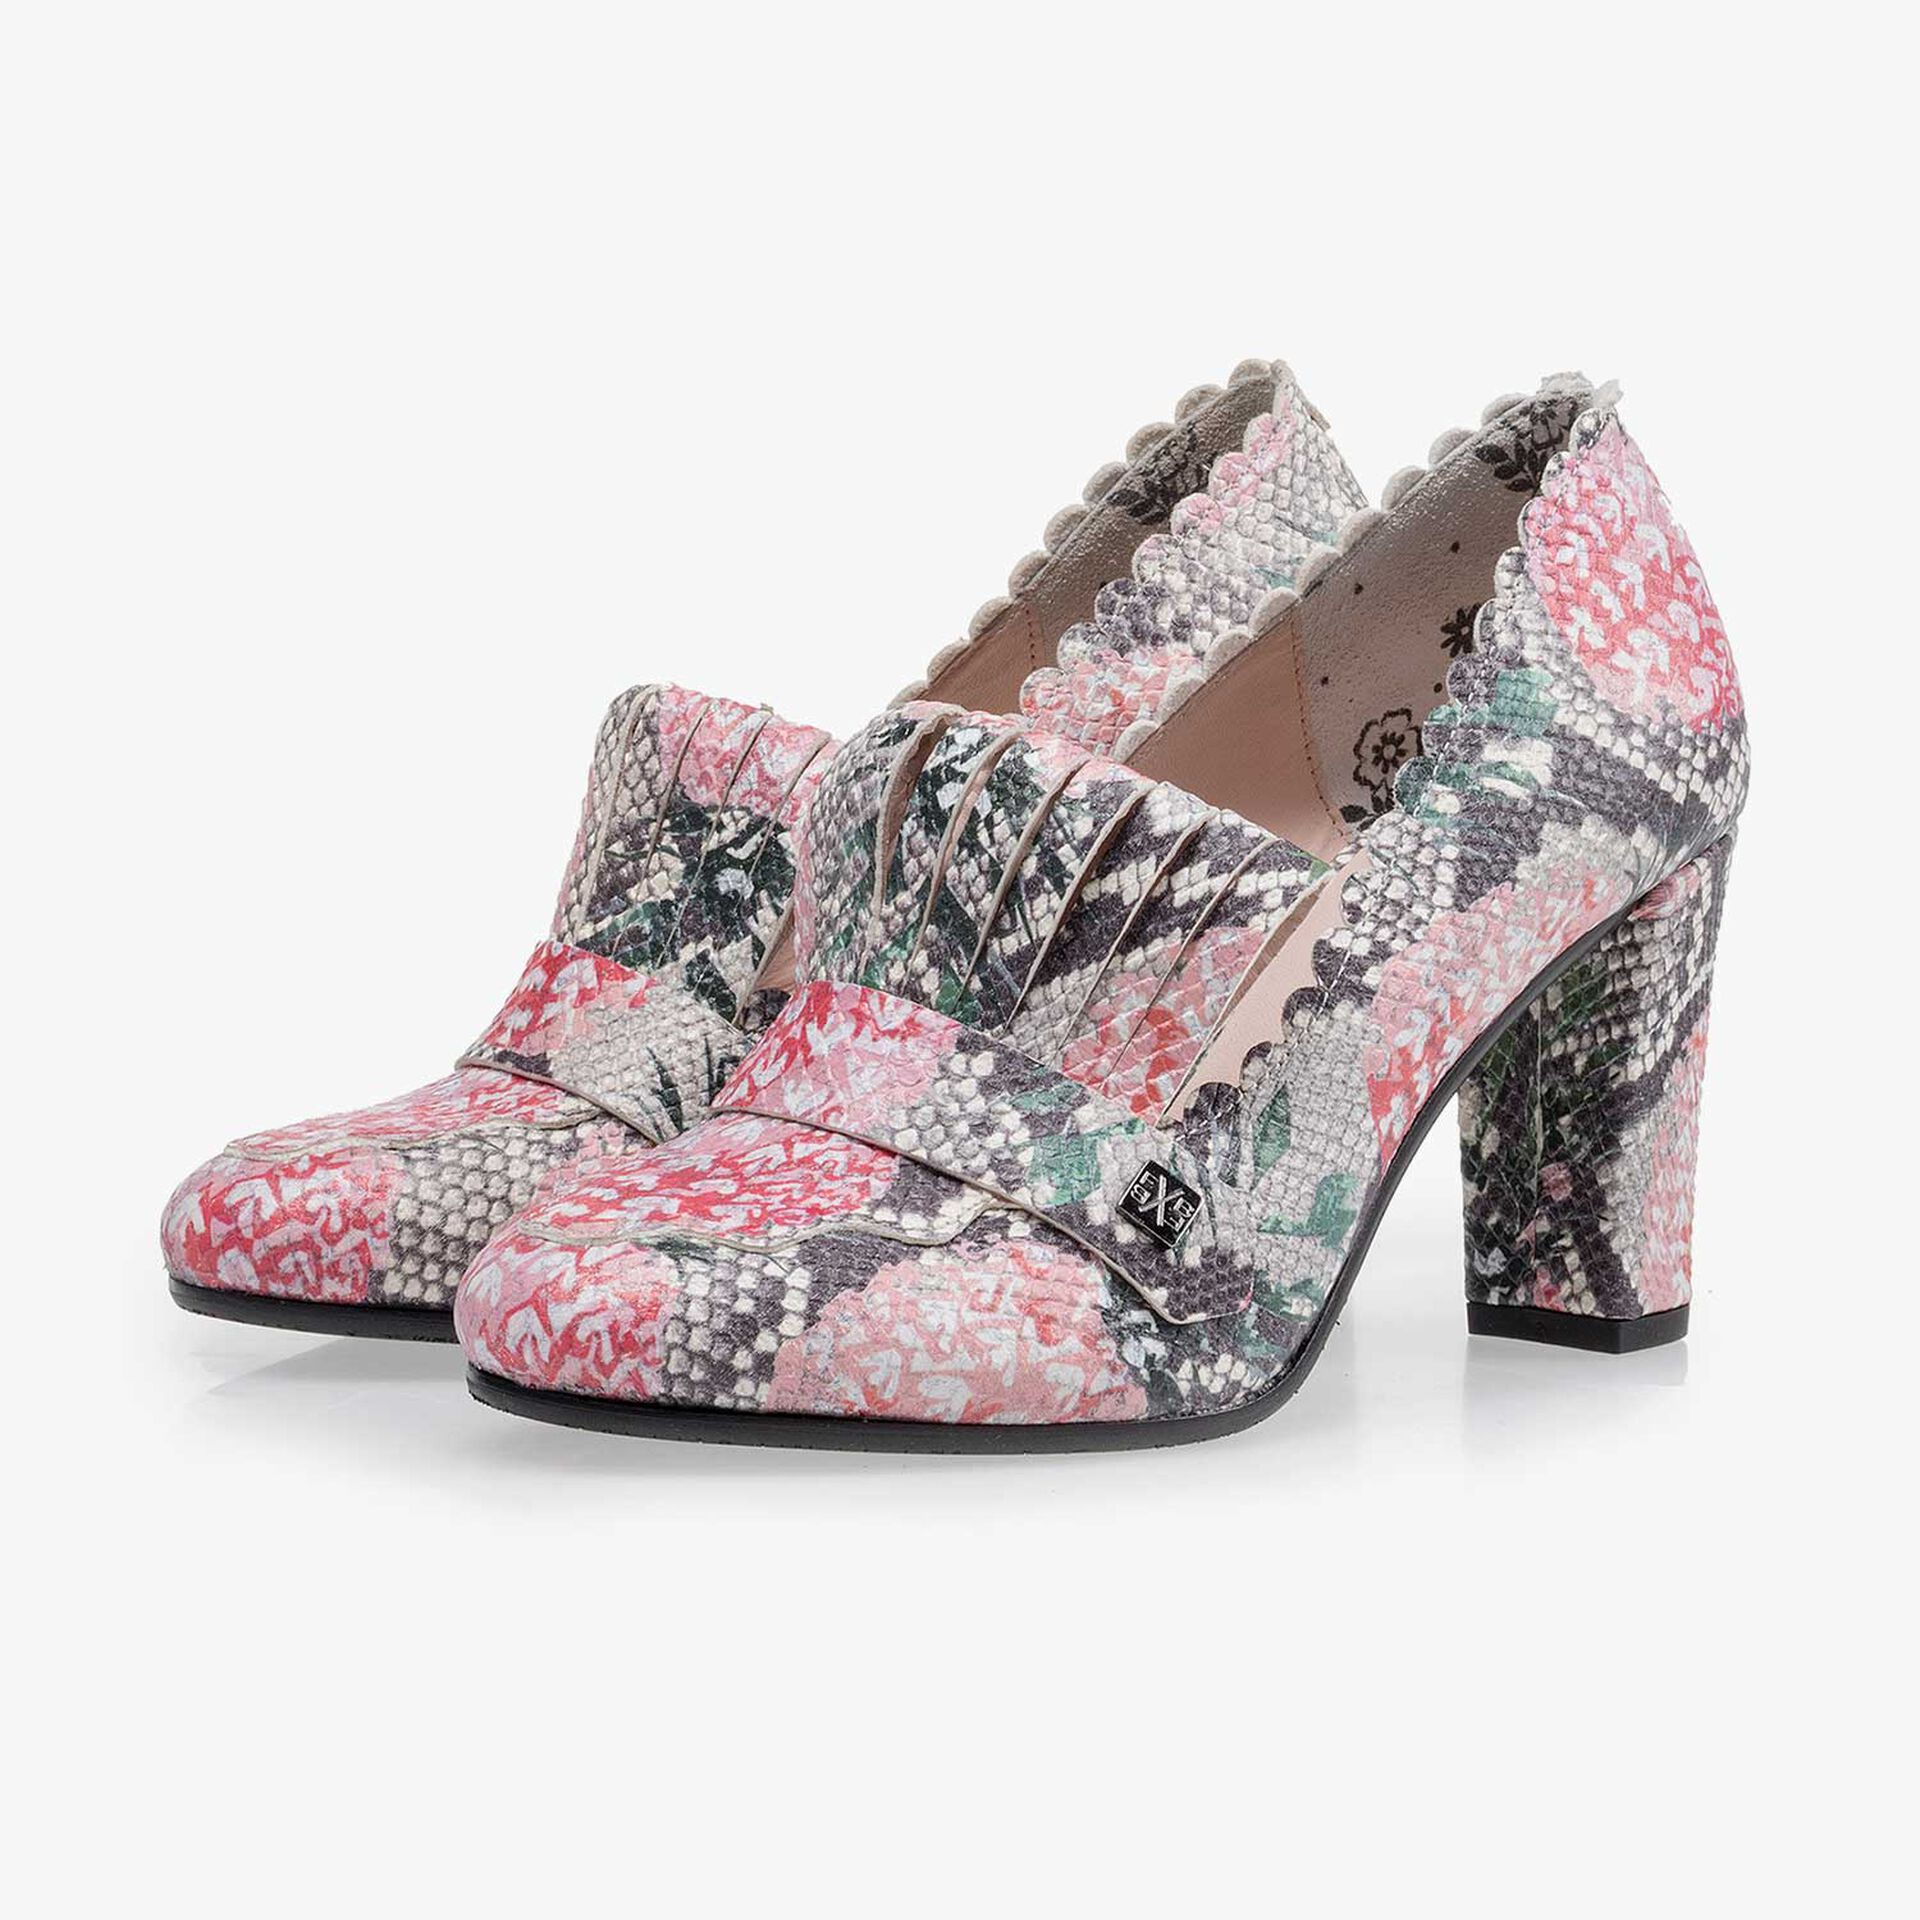 Multi-coloured leather pumps with all-over print